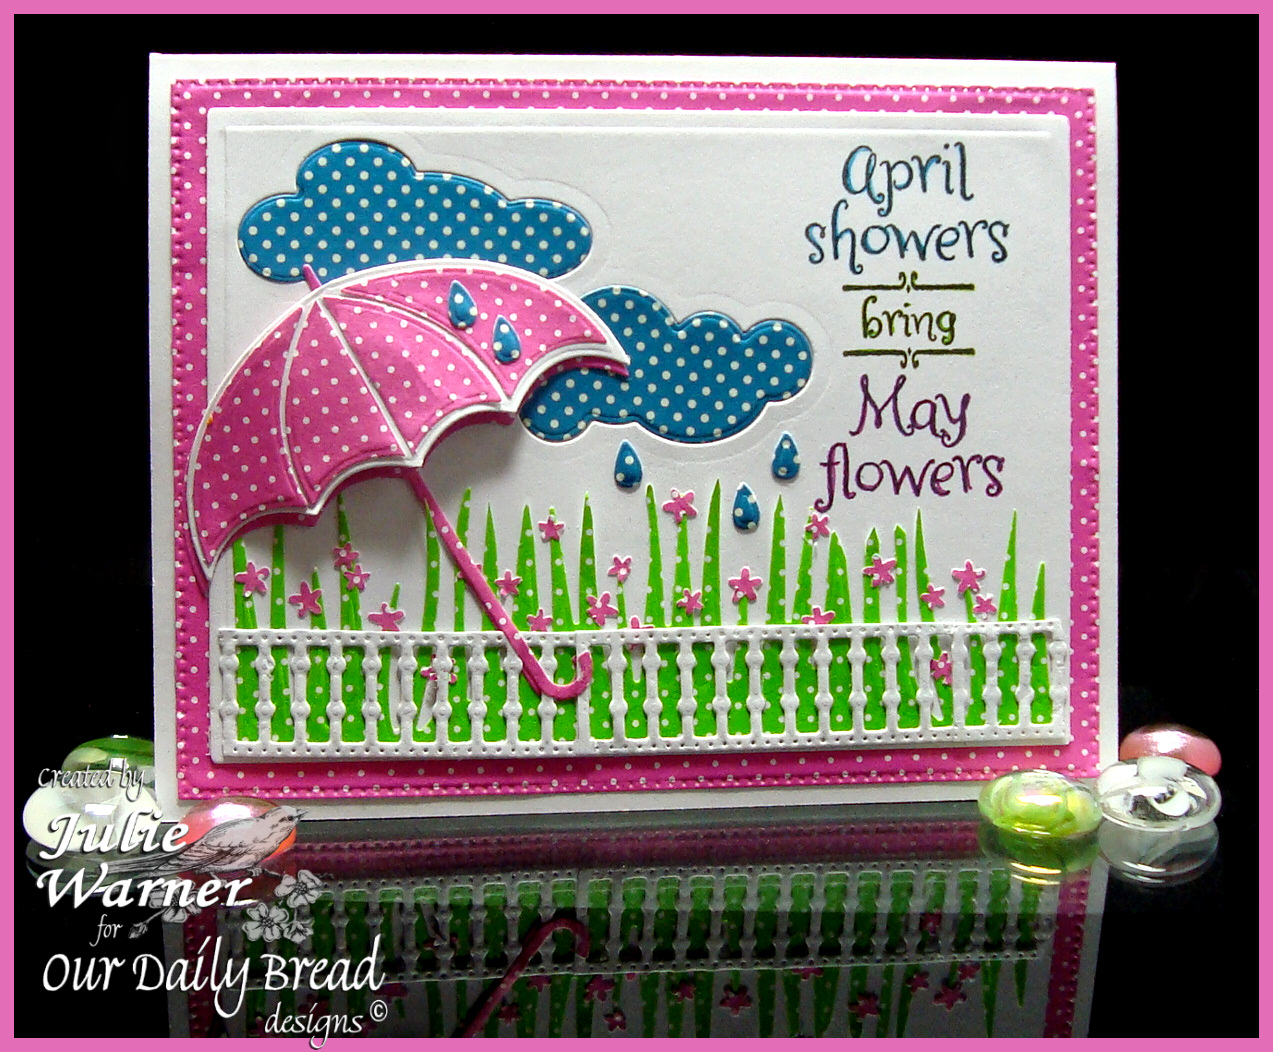 April Showers 06025